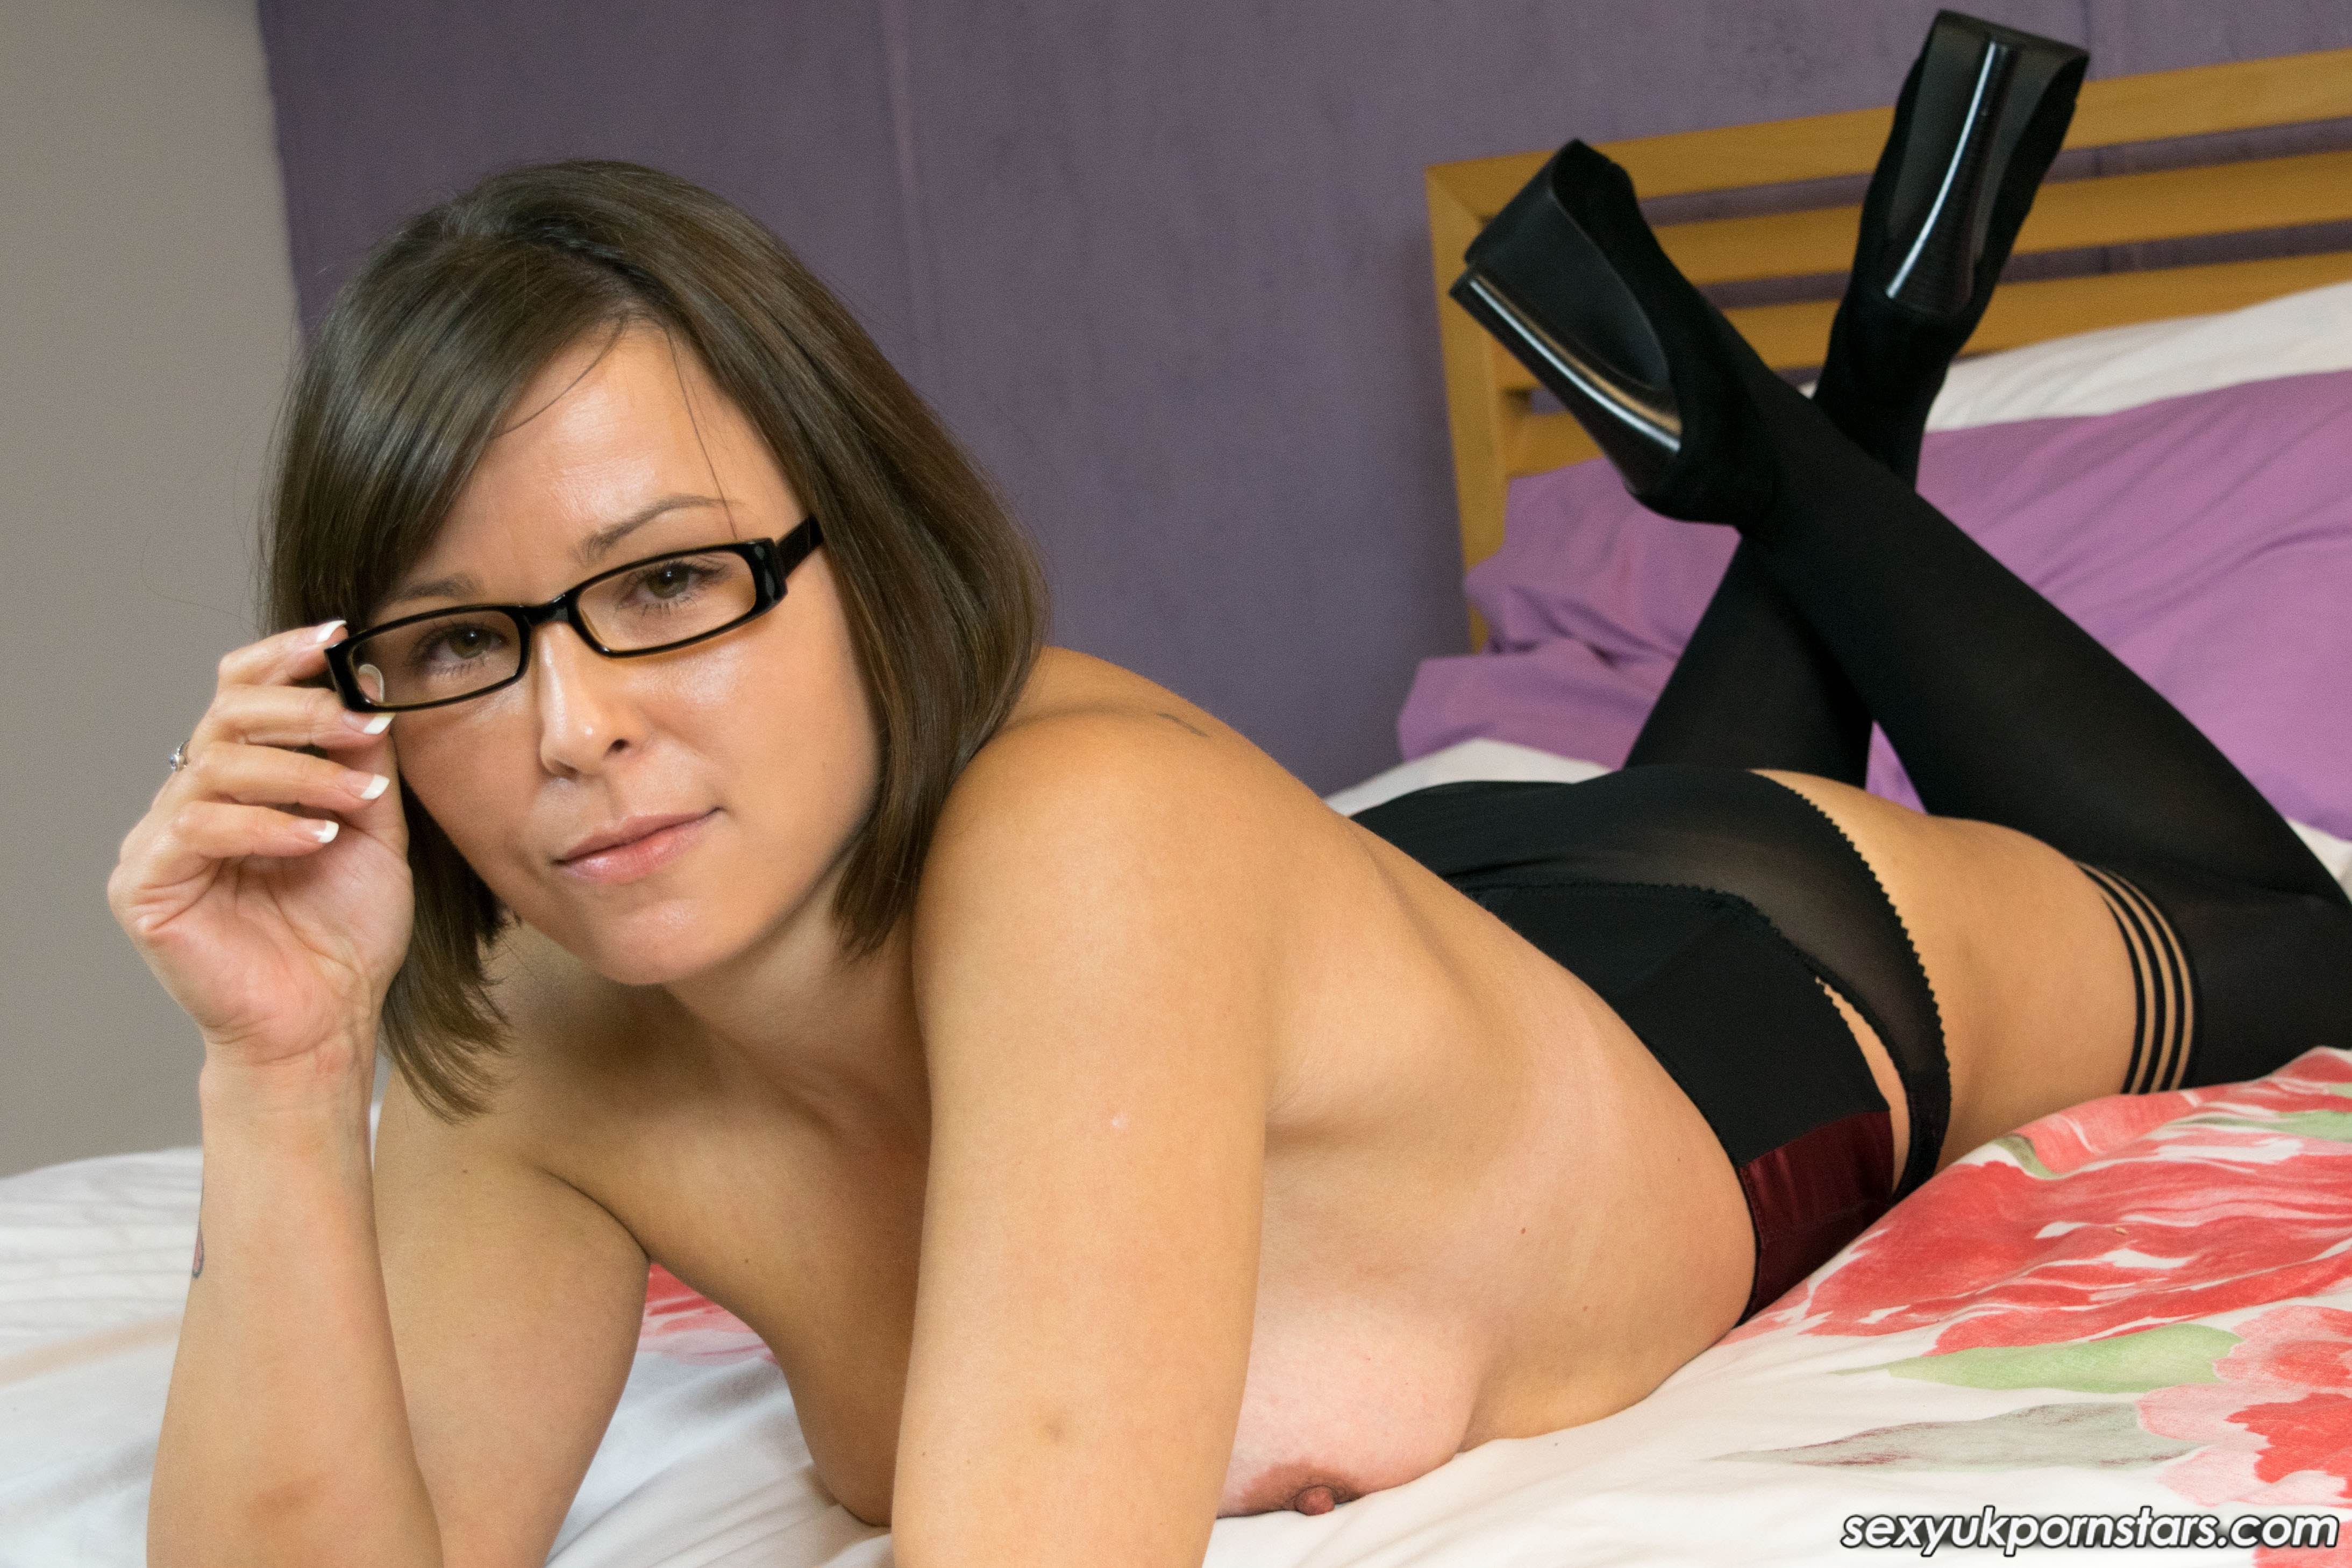 can recommend. lesbian domination tribadism consider, that you are